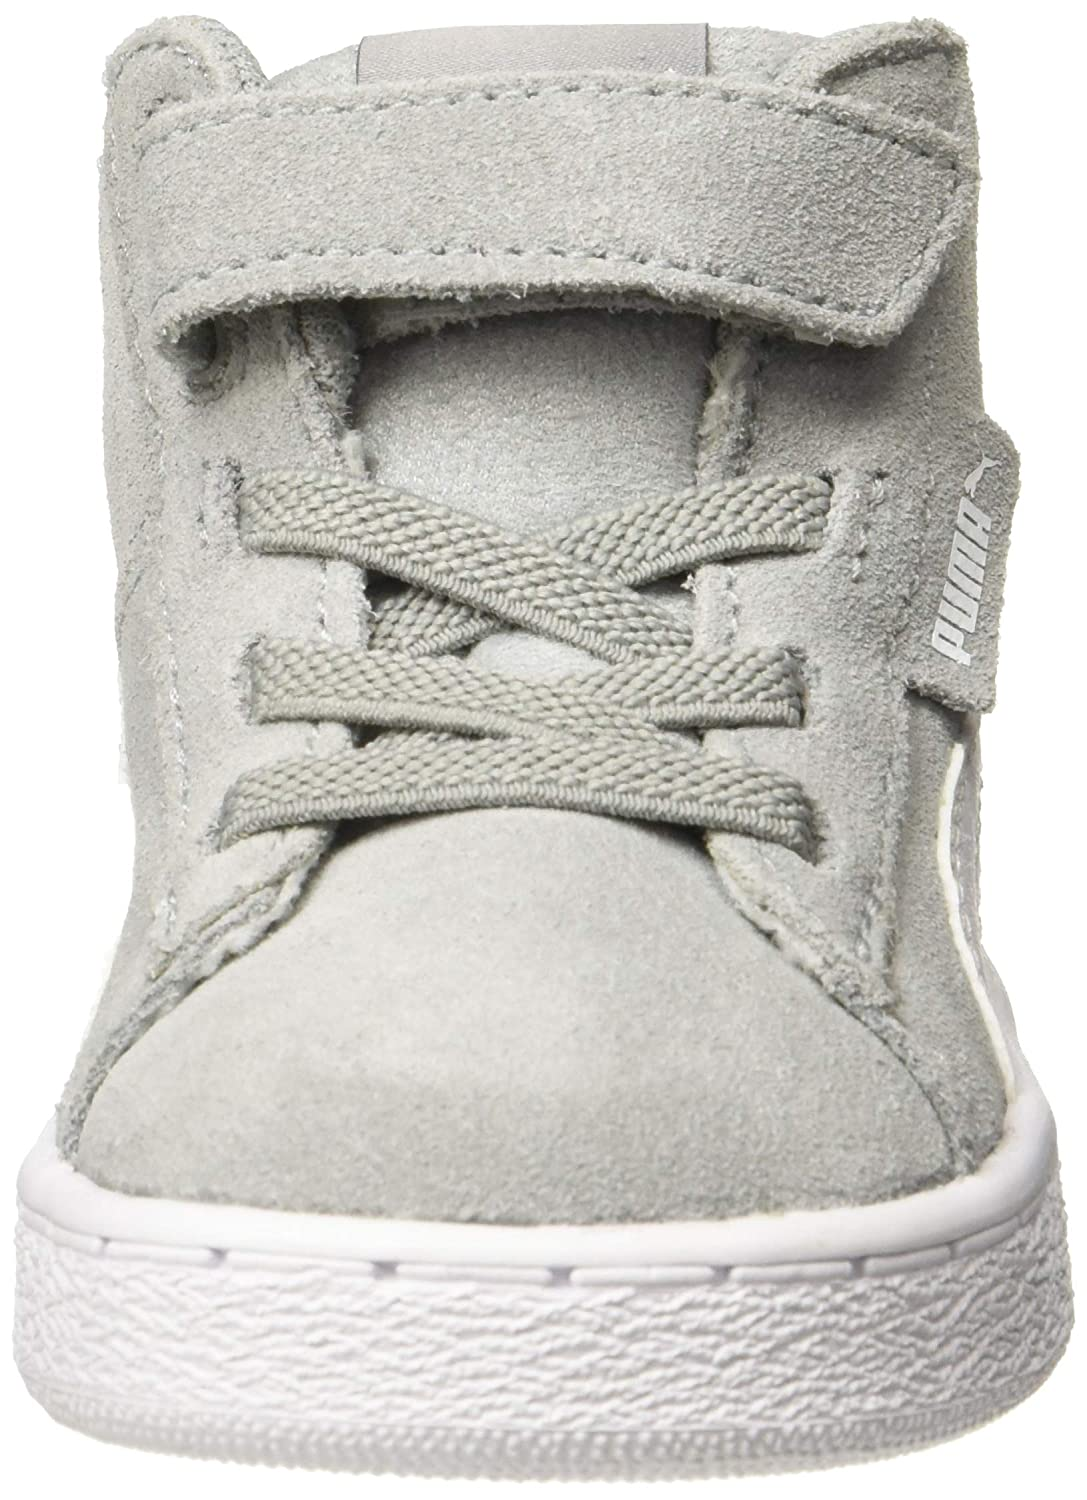 Puma Unisex s 1948 Mid V Inf Quarry White Sneakers  Buy Online at Low  Prices in India - Amazon.in 96fc521a8